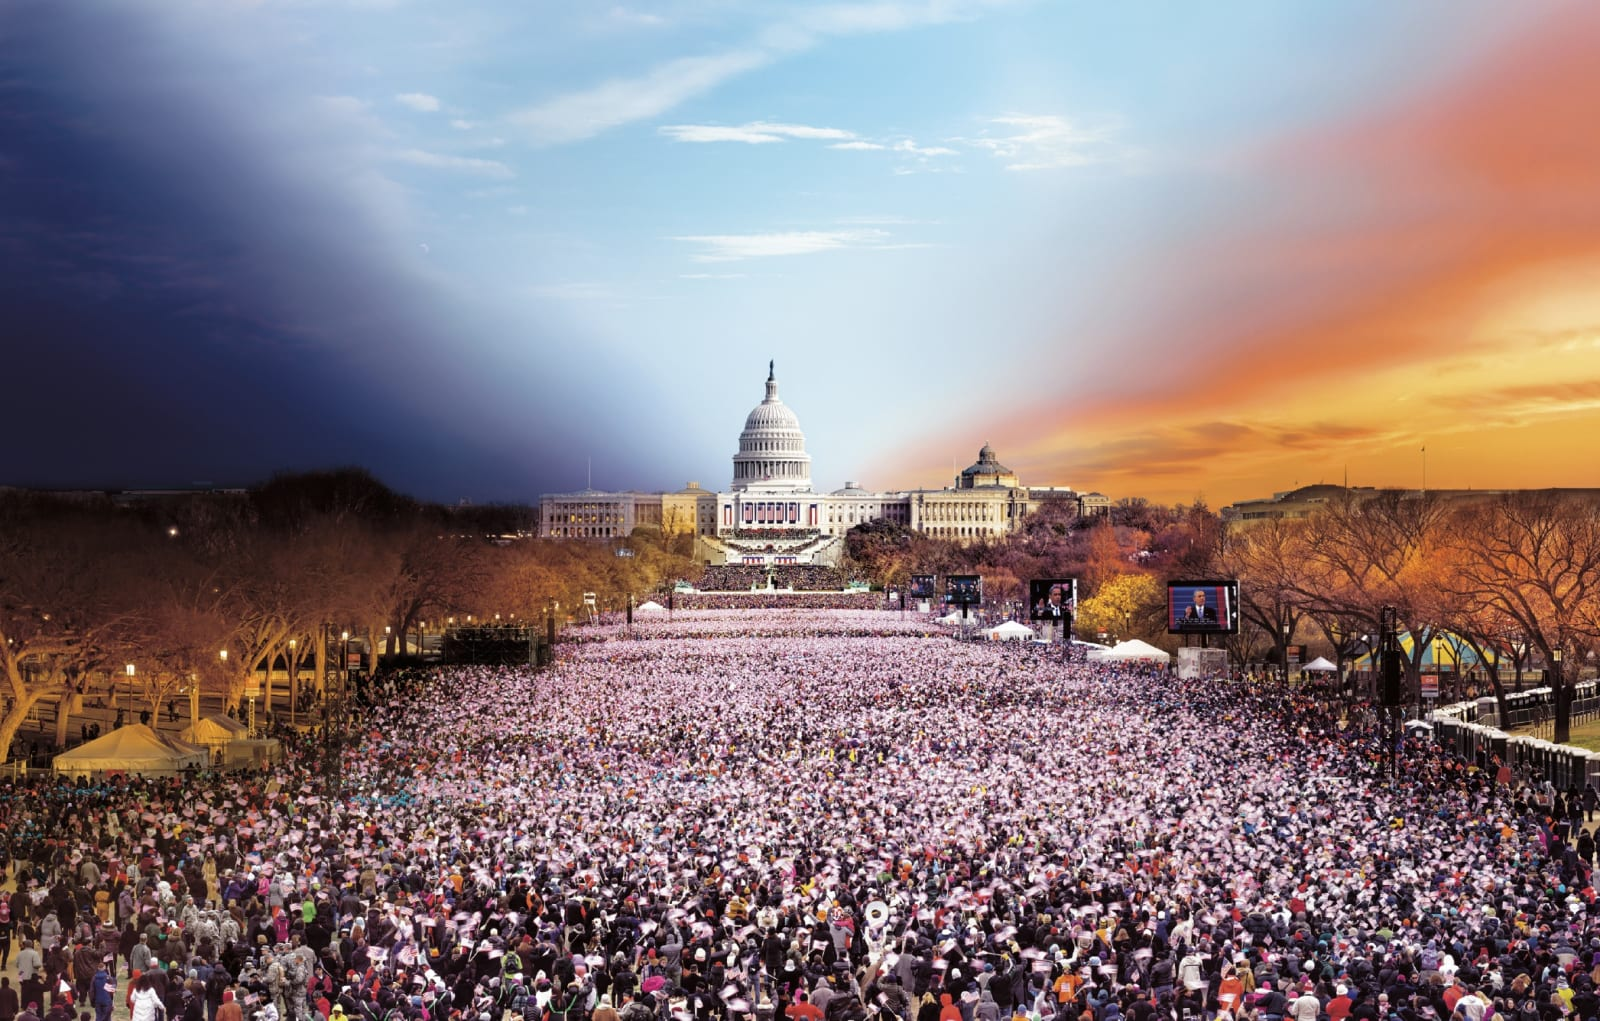 Stephen Wilkes Presidential Inauguration, Washington D.C., Day to Night, 2013 Signed on label verso 25 1/2 x 40 inch archival pigment print Edition of 50 36 x 56 1/2 inch archival pigment print Edition of 30 48 x 75 1/2 inch archival pigment print Edition of 25